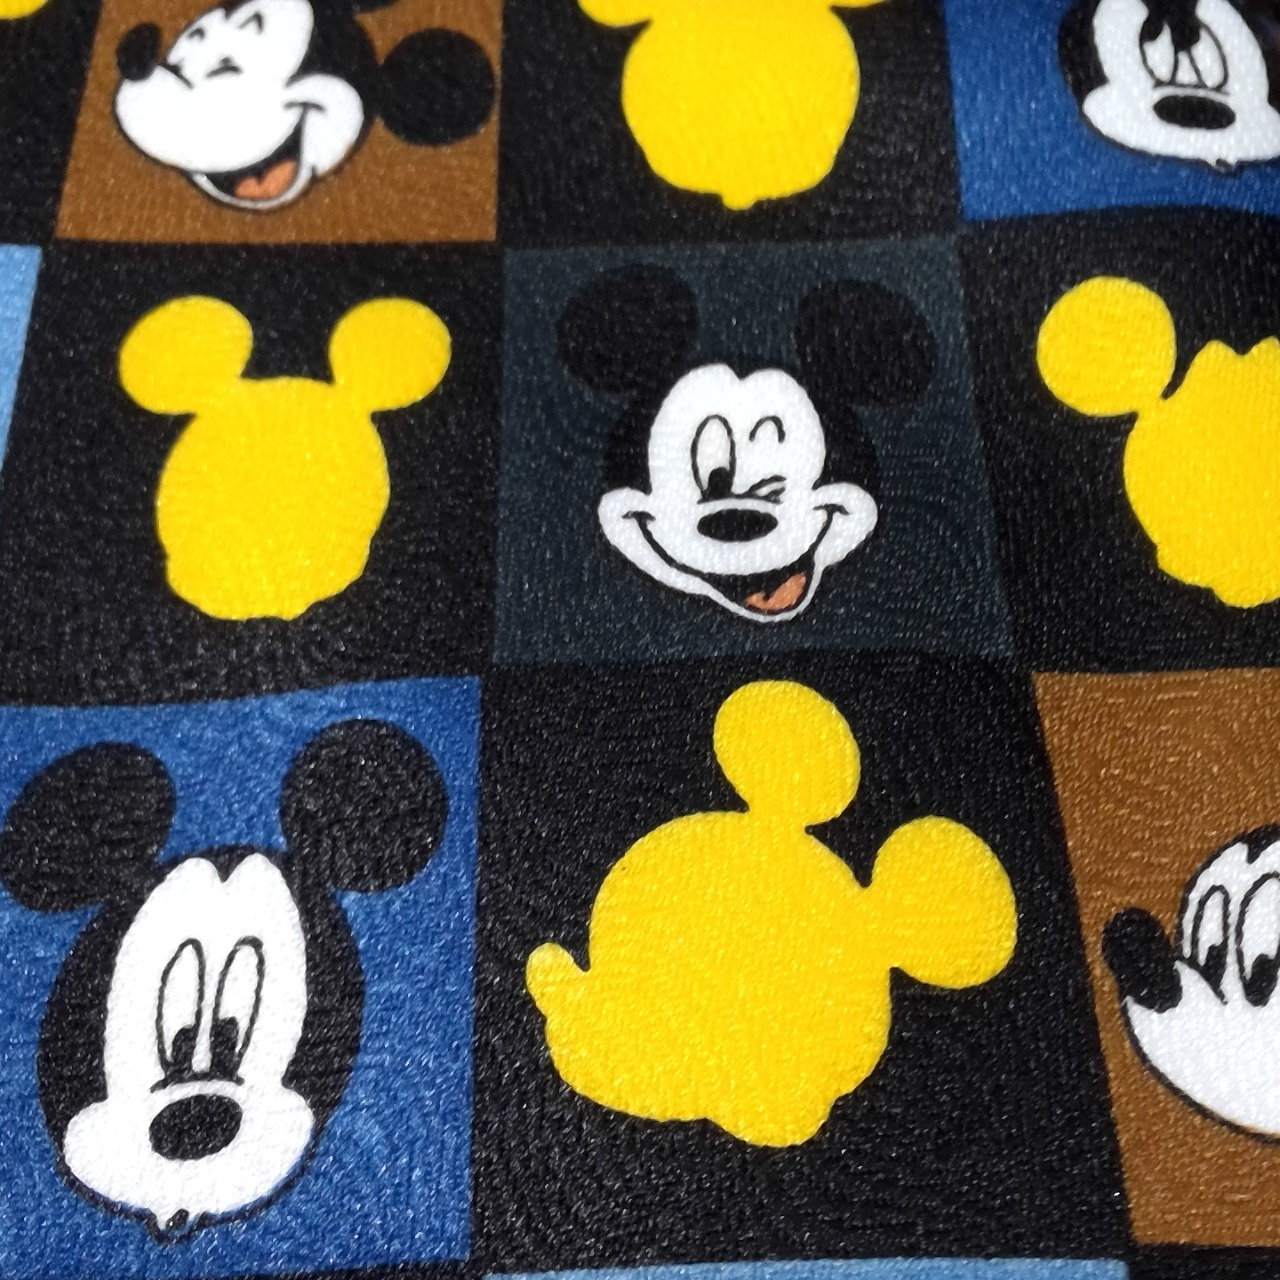 Mens MICKEY MOUSE TIE 'Mickey & Co' Black /Yellow/Brown/Navy Blue